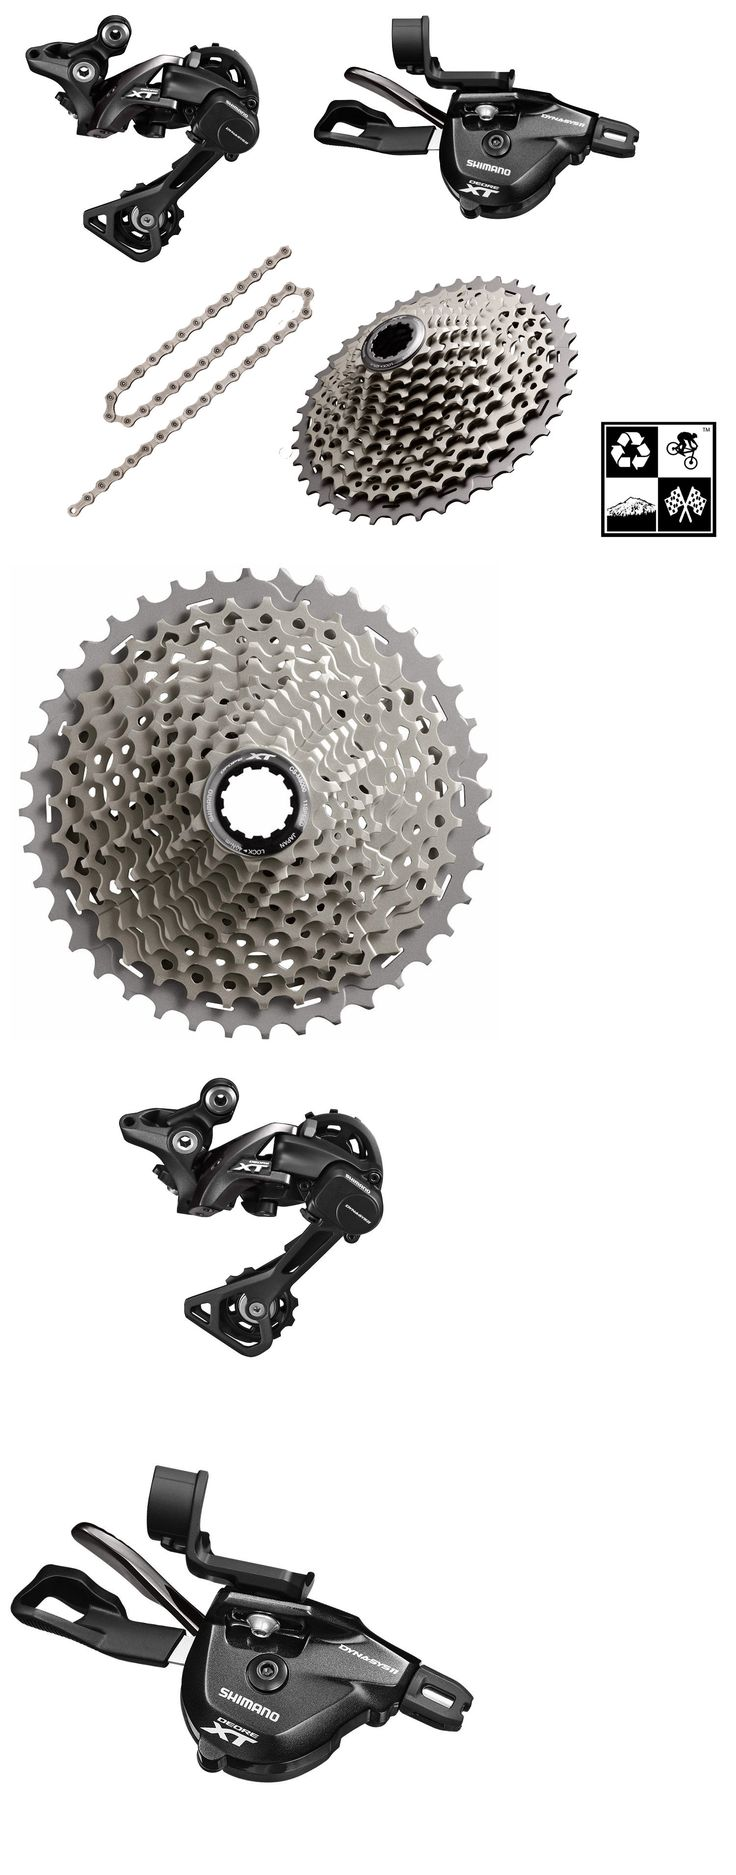 Build Kits and Gruppos 109120: Shimano Deore Xt M8000 Mini Group 1X11 11-46T Medium-Cage (I-Spec Ii Mount) -> BUY IT NOW ONLY: $246 on eBay!